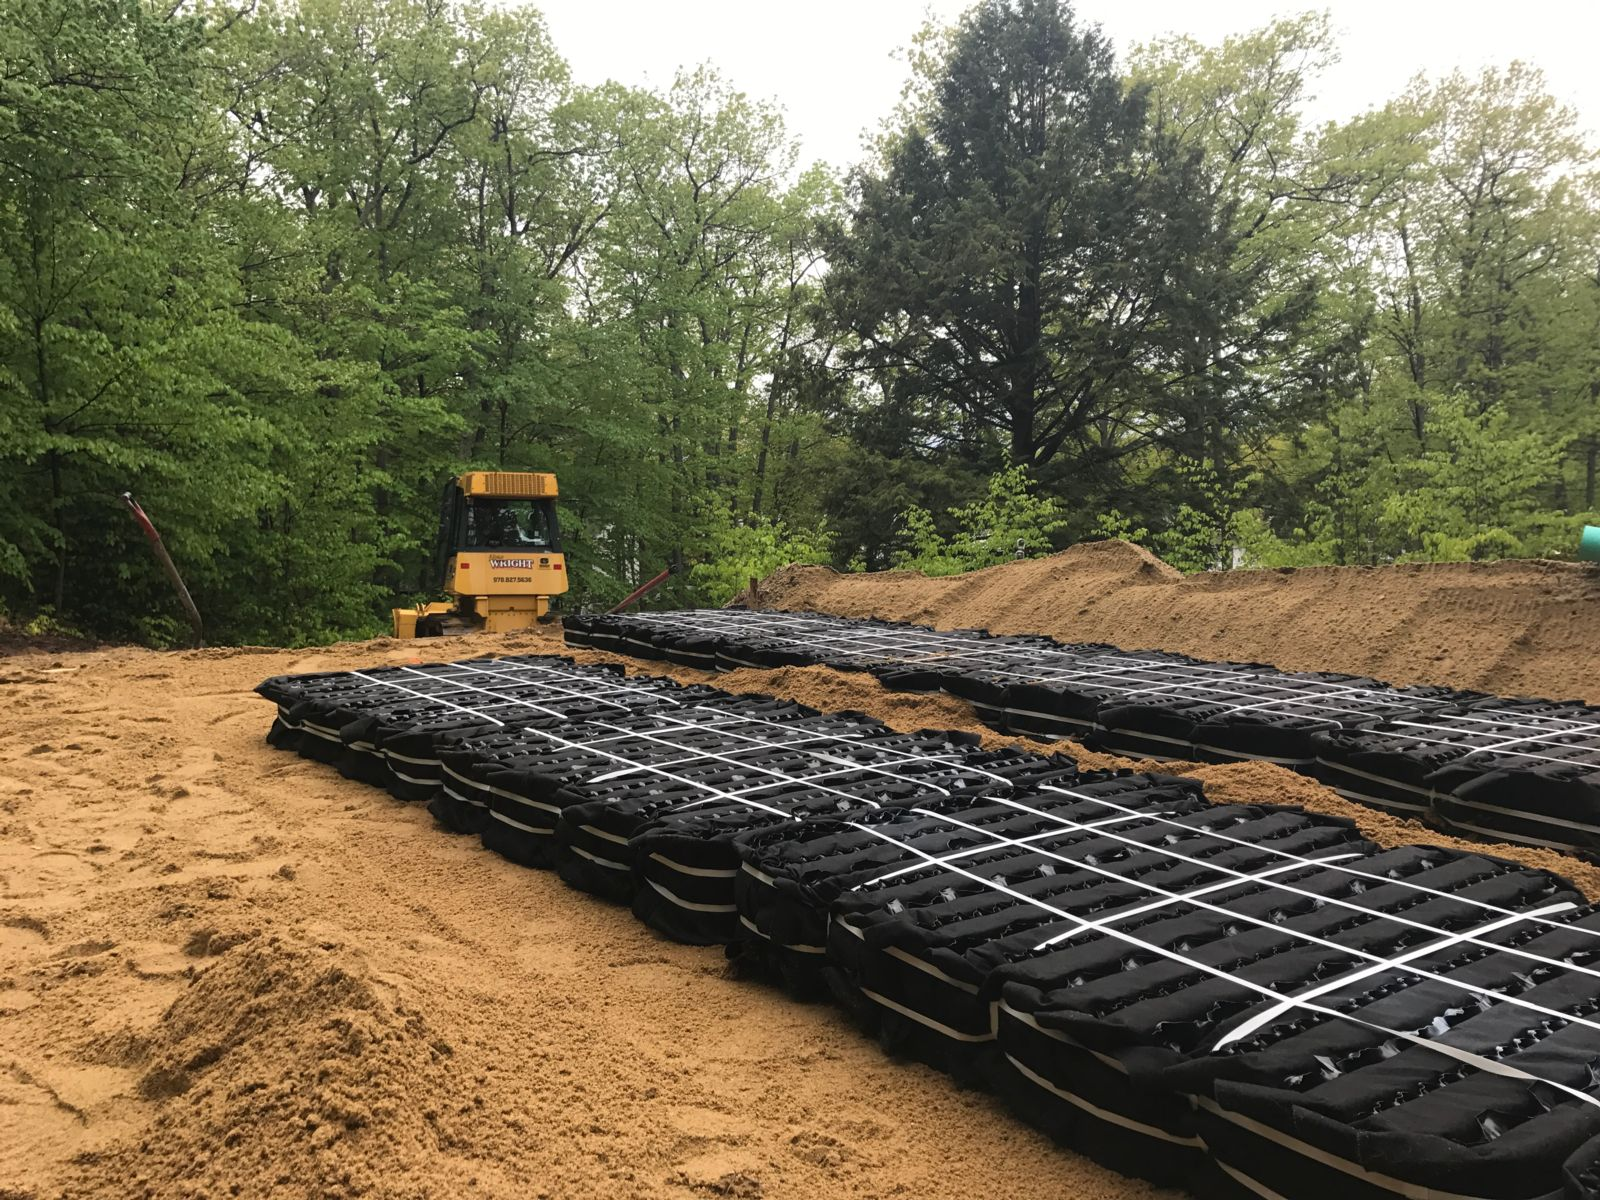 Eljen B43 units installed in bed excavation